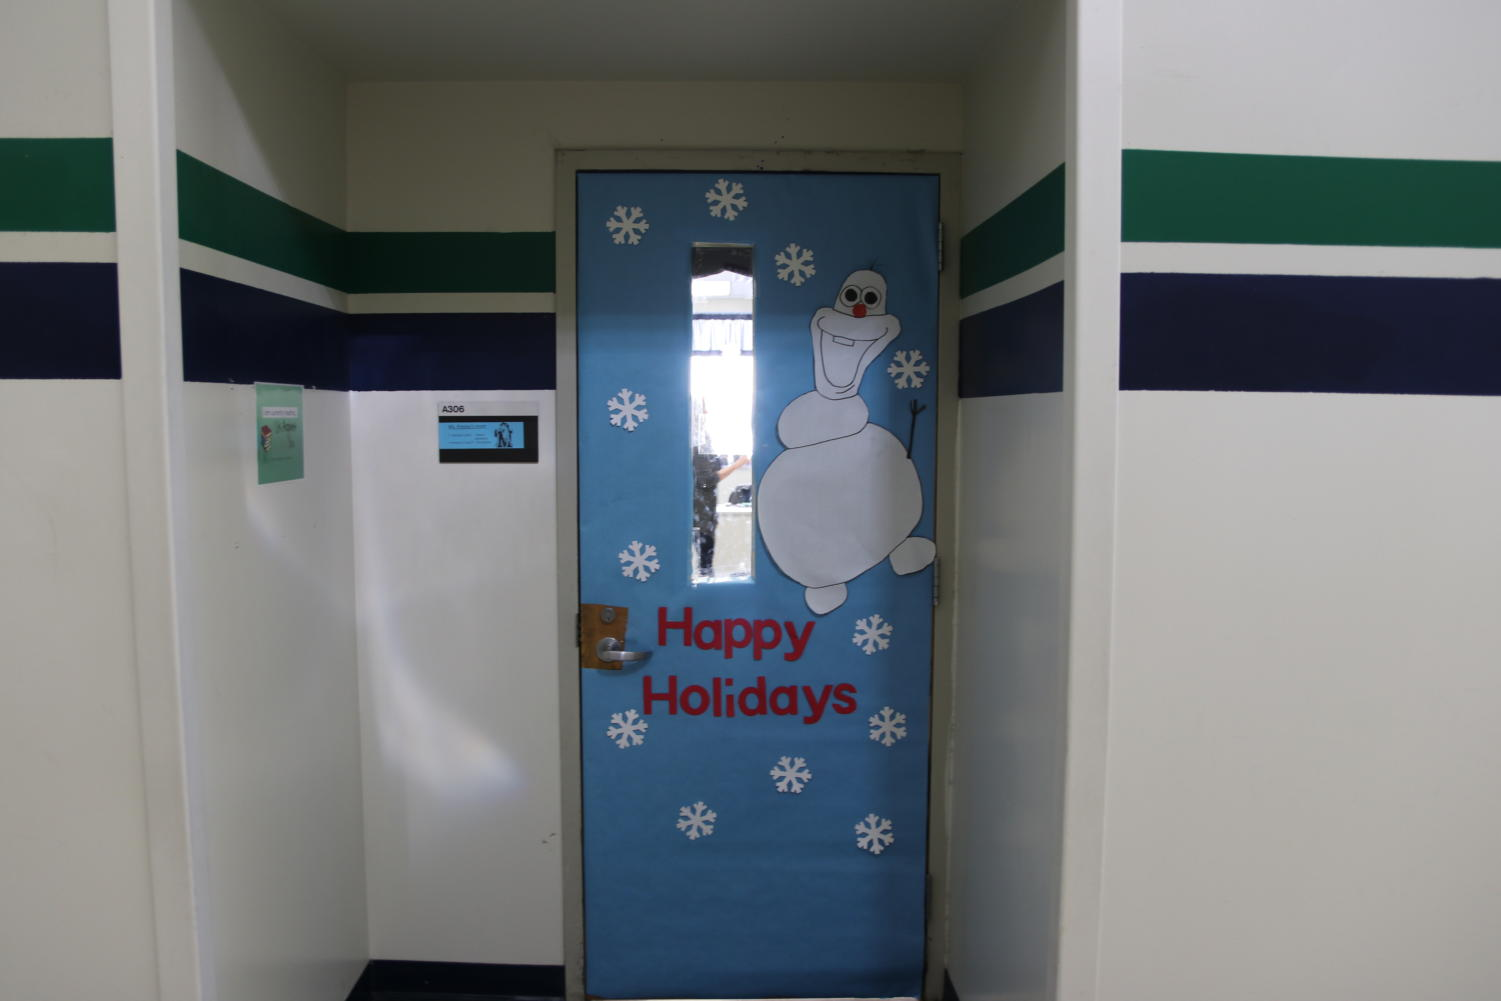 Cathy+Presley%2C+math+teacher%2C+has+a+familiar+character+on+her+door.+The+character%2C+Olaf%2C+from+Disney%E2%80%99s+Frozen+is+bright+and+present+against+the+blue+background.+%0A